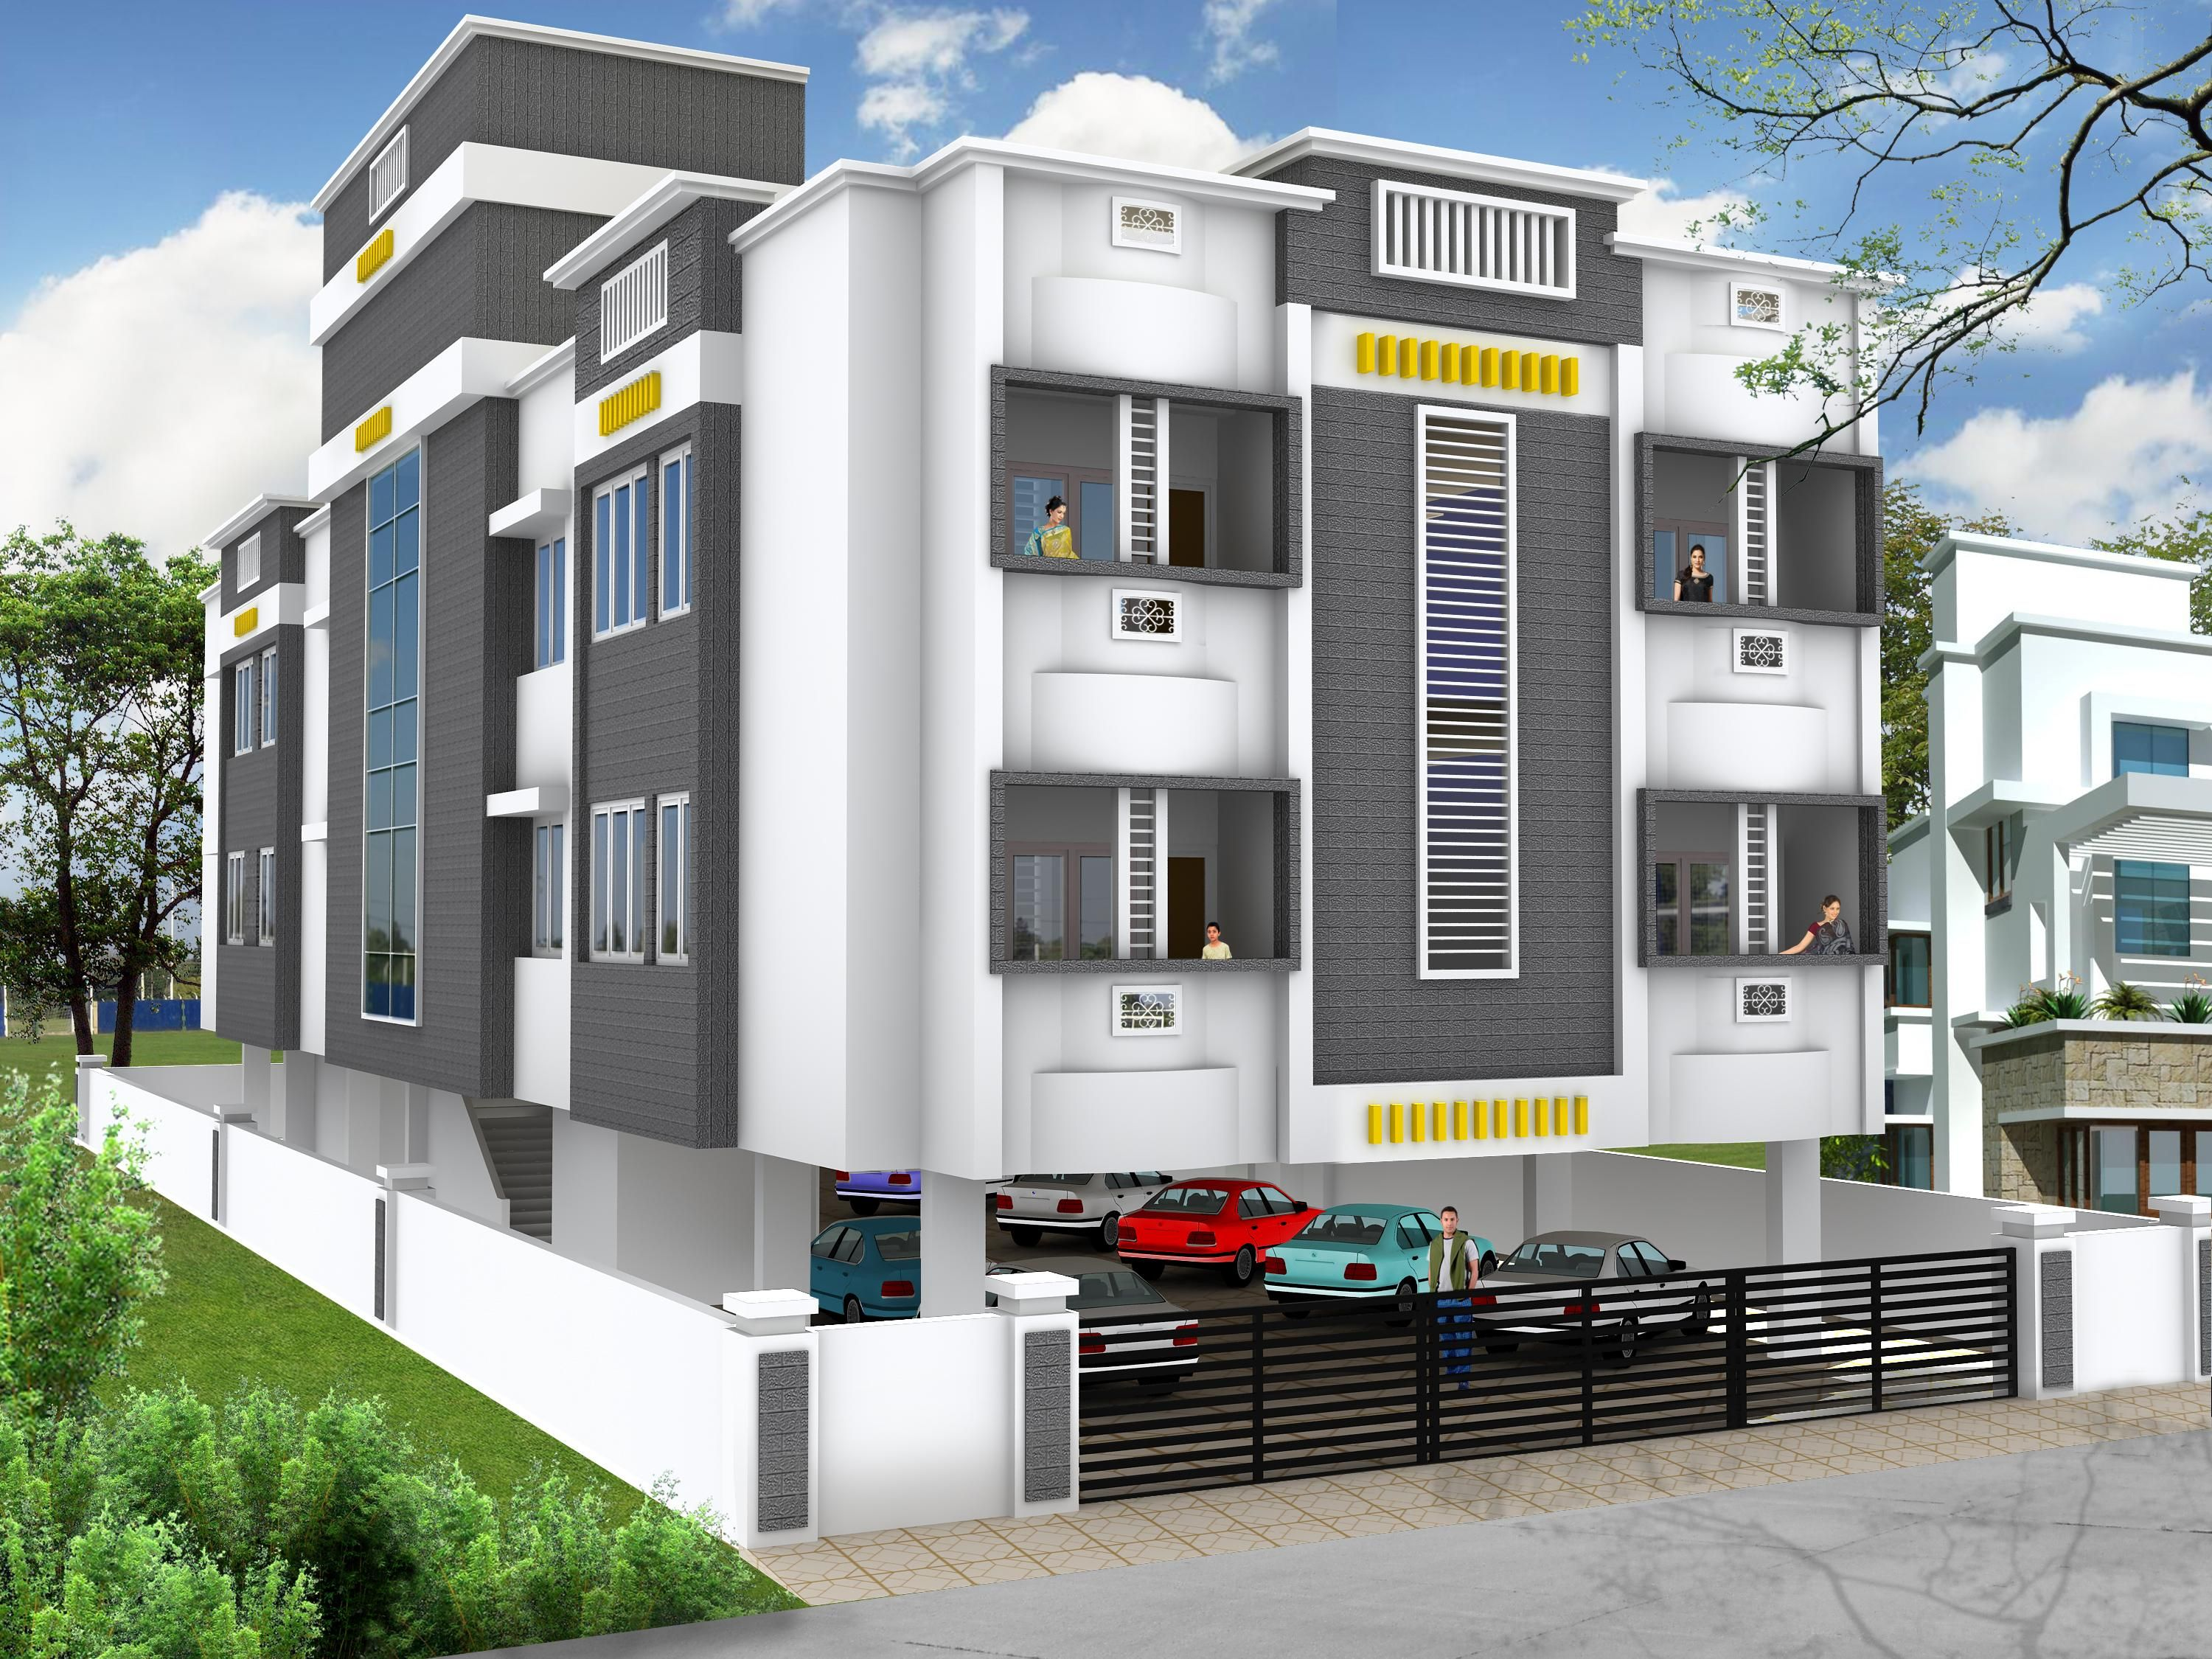 D Front Elevation Of Building : Elevations of residential buildings in indian photo